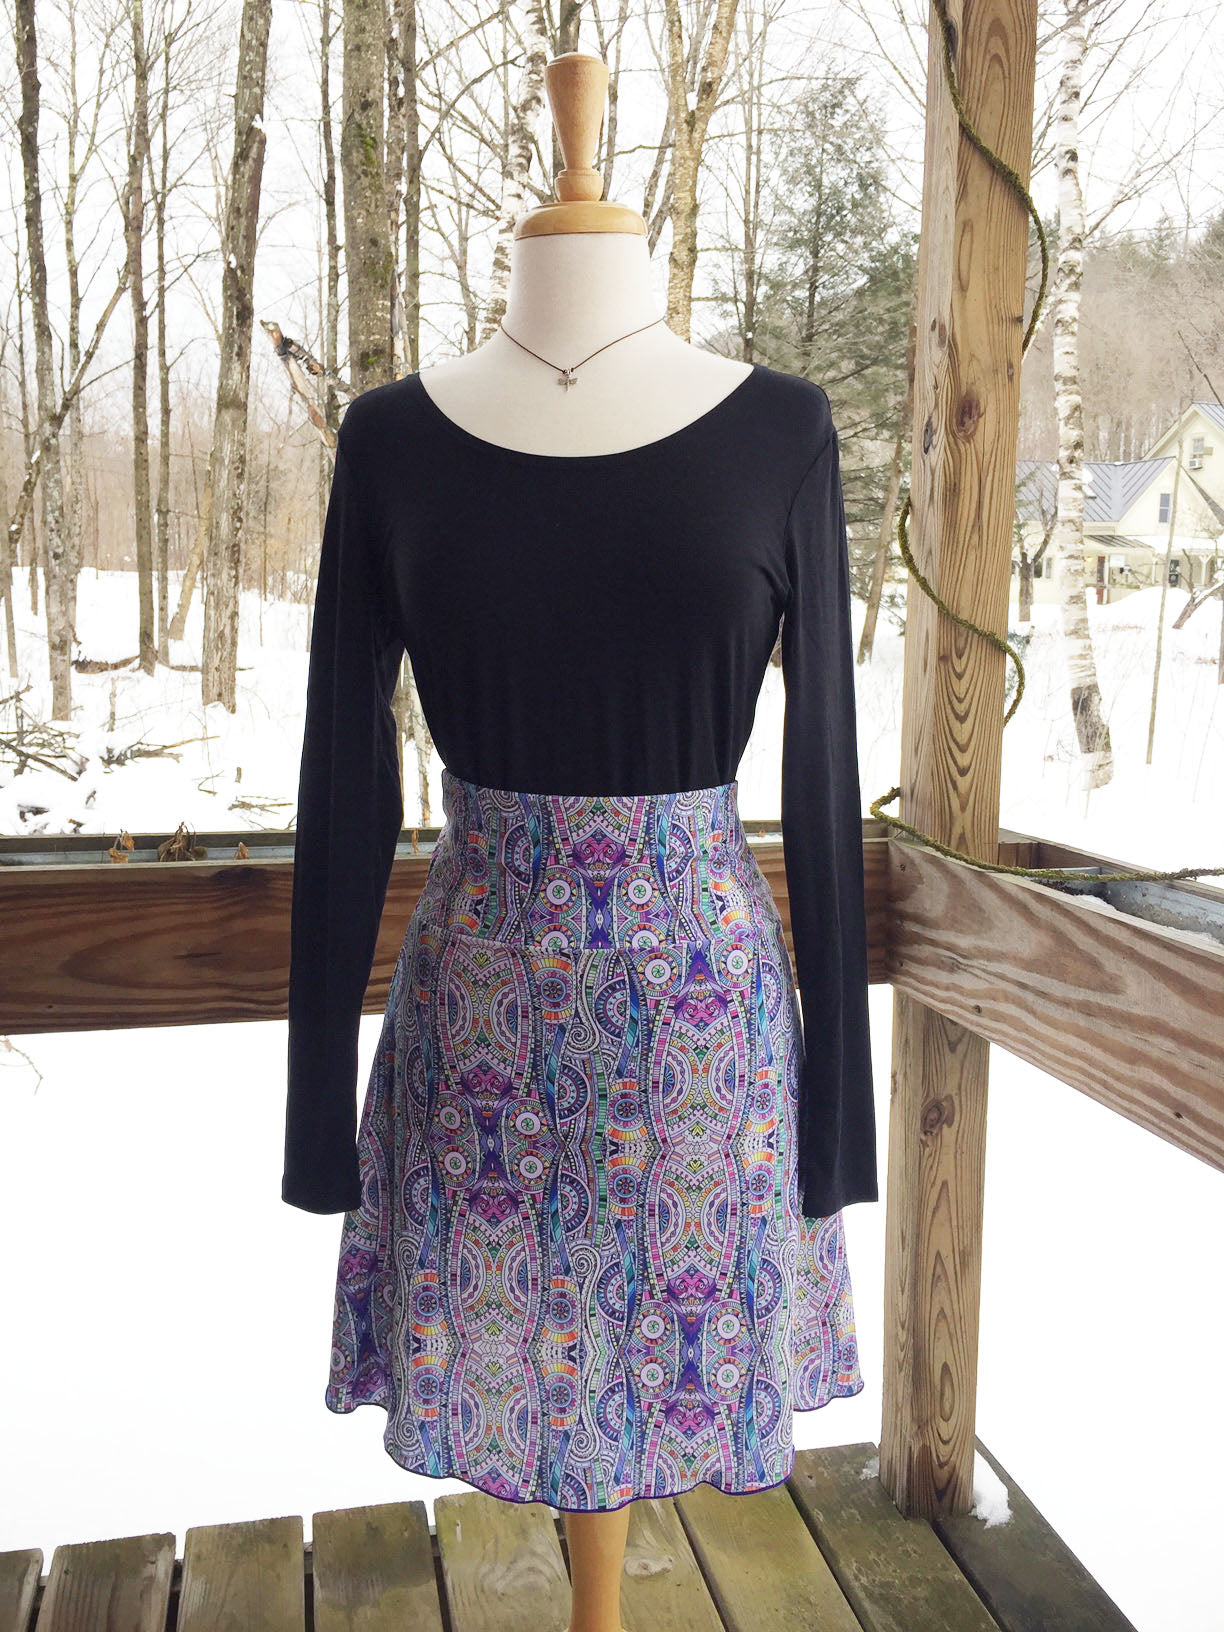 Reign Vermont Adventure Skirt in Mosaic